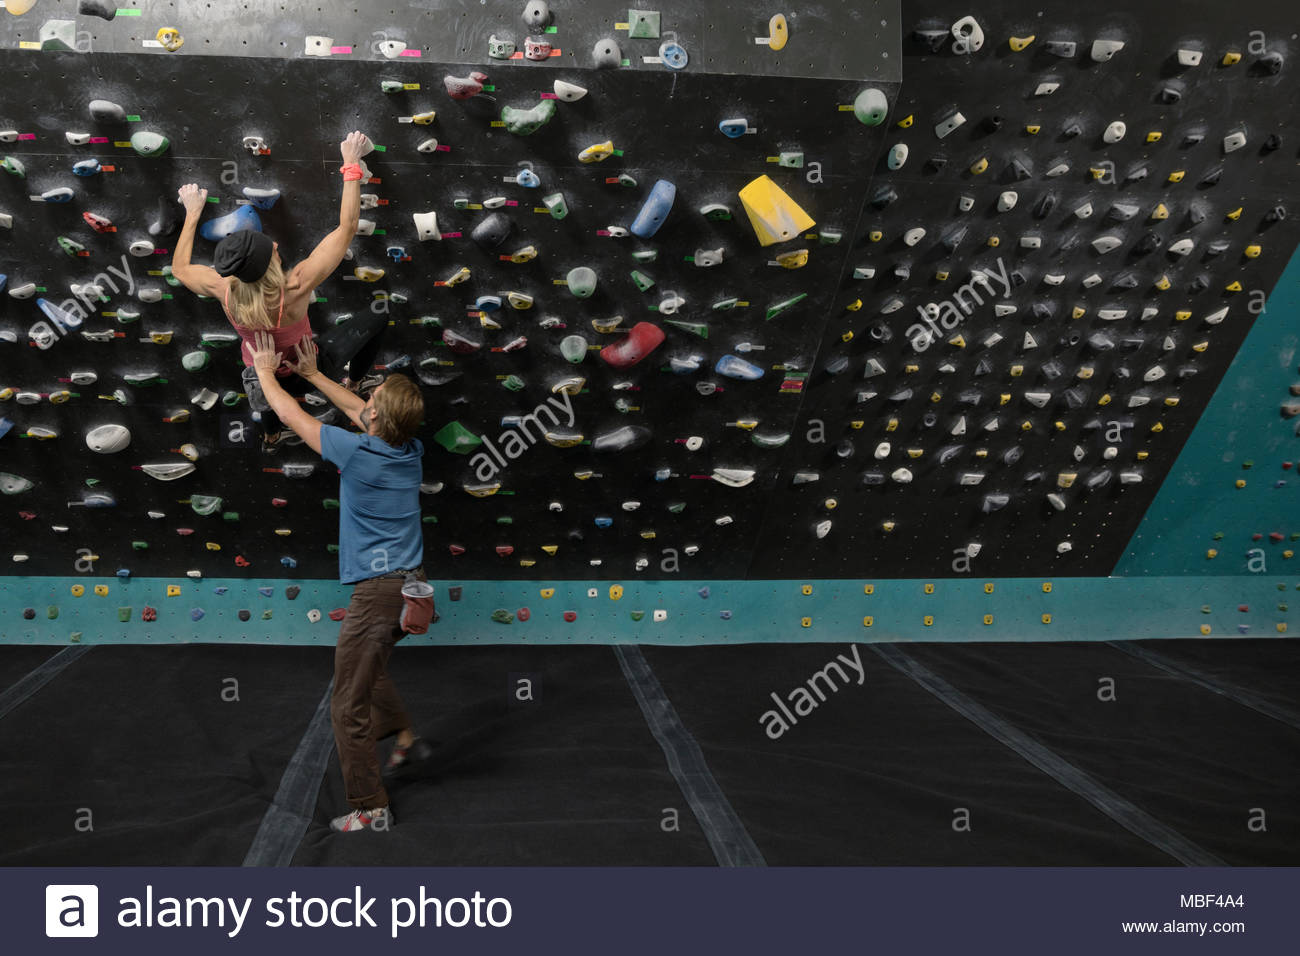 Male rock climber spotting, supporting female rock climber climbing wall at climbing gym - Stock Image